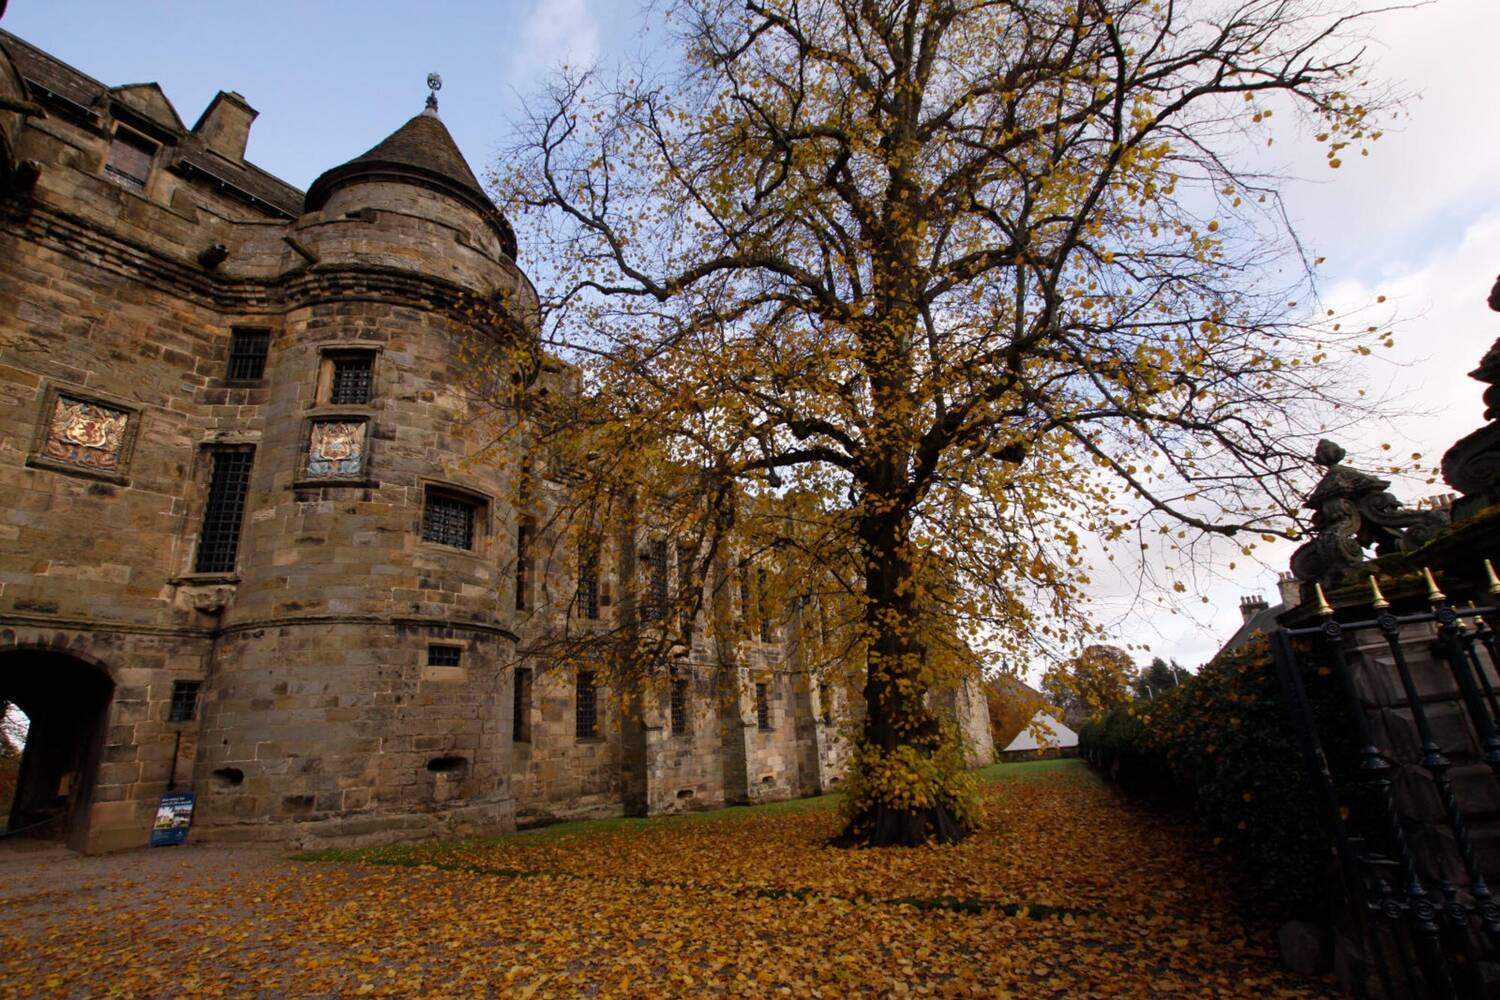 Falkland Palace in autumn, with a large tree in front, its leaves on the ground.